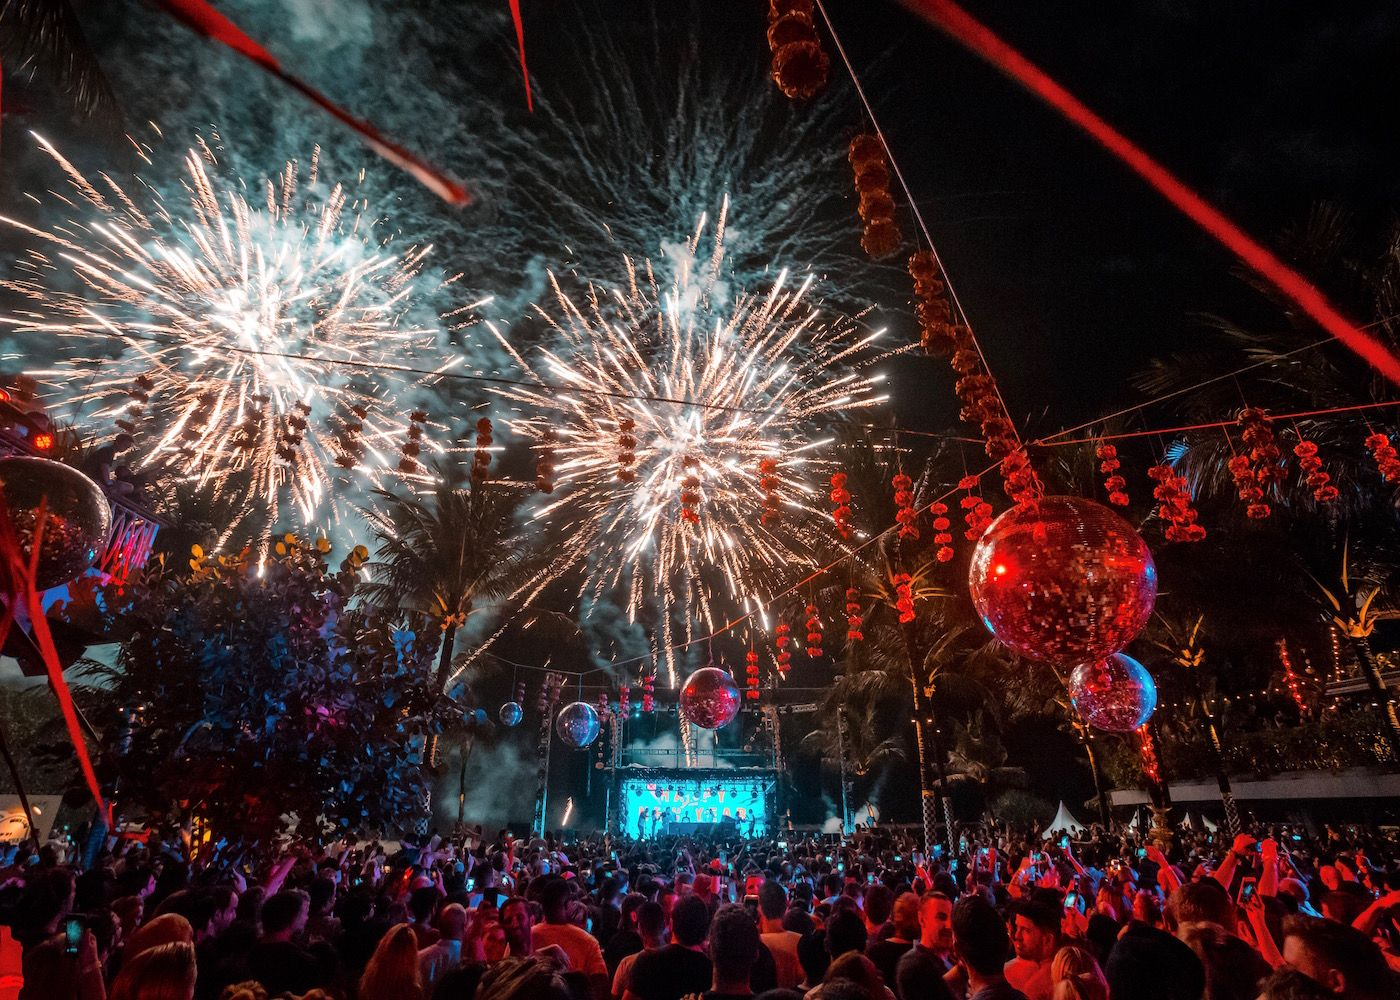 Best Places To Celebrate New Years With Images Paris New Years Eve